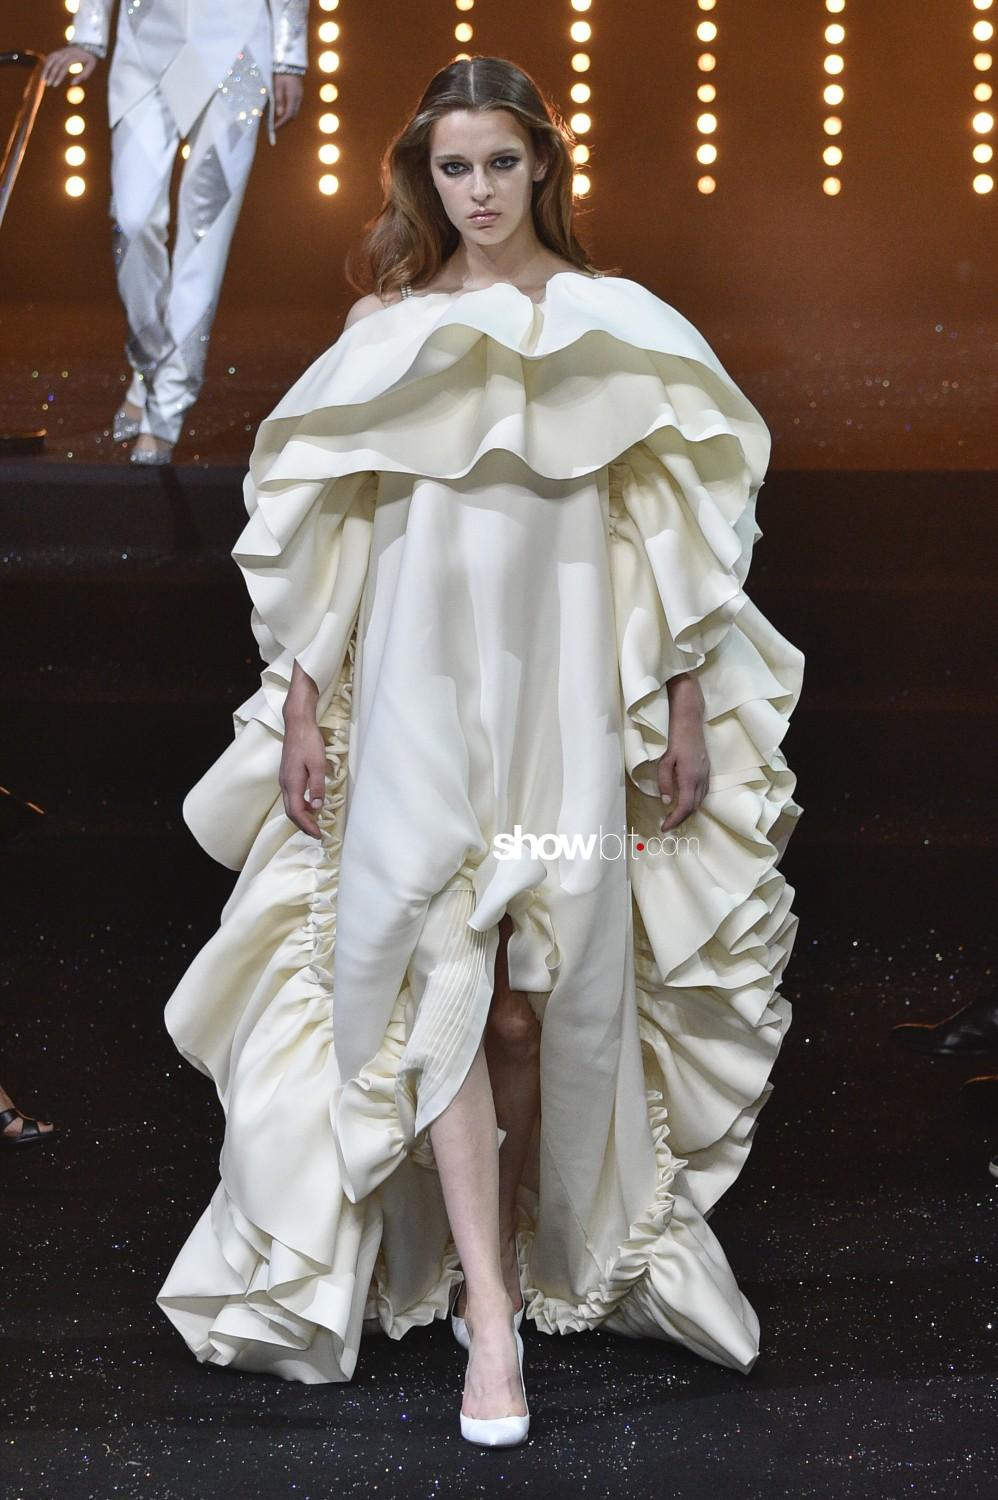 Viktor & Rolf Haute Couture Fall Winter 2018 Paris